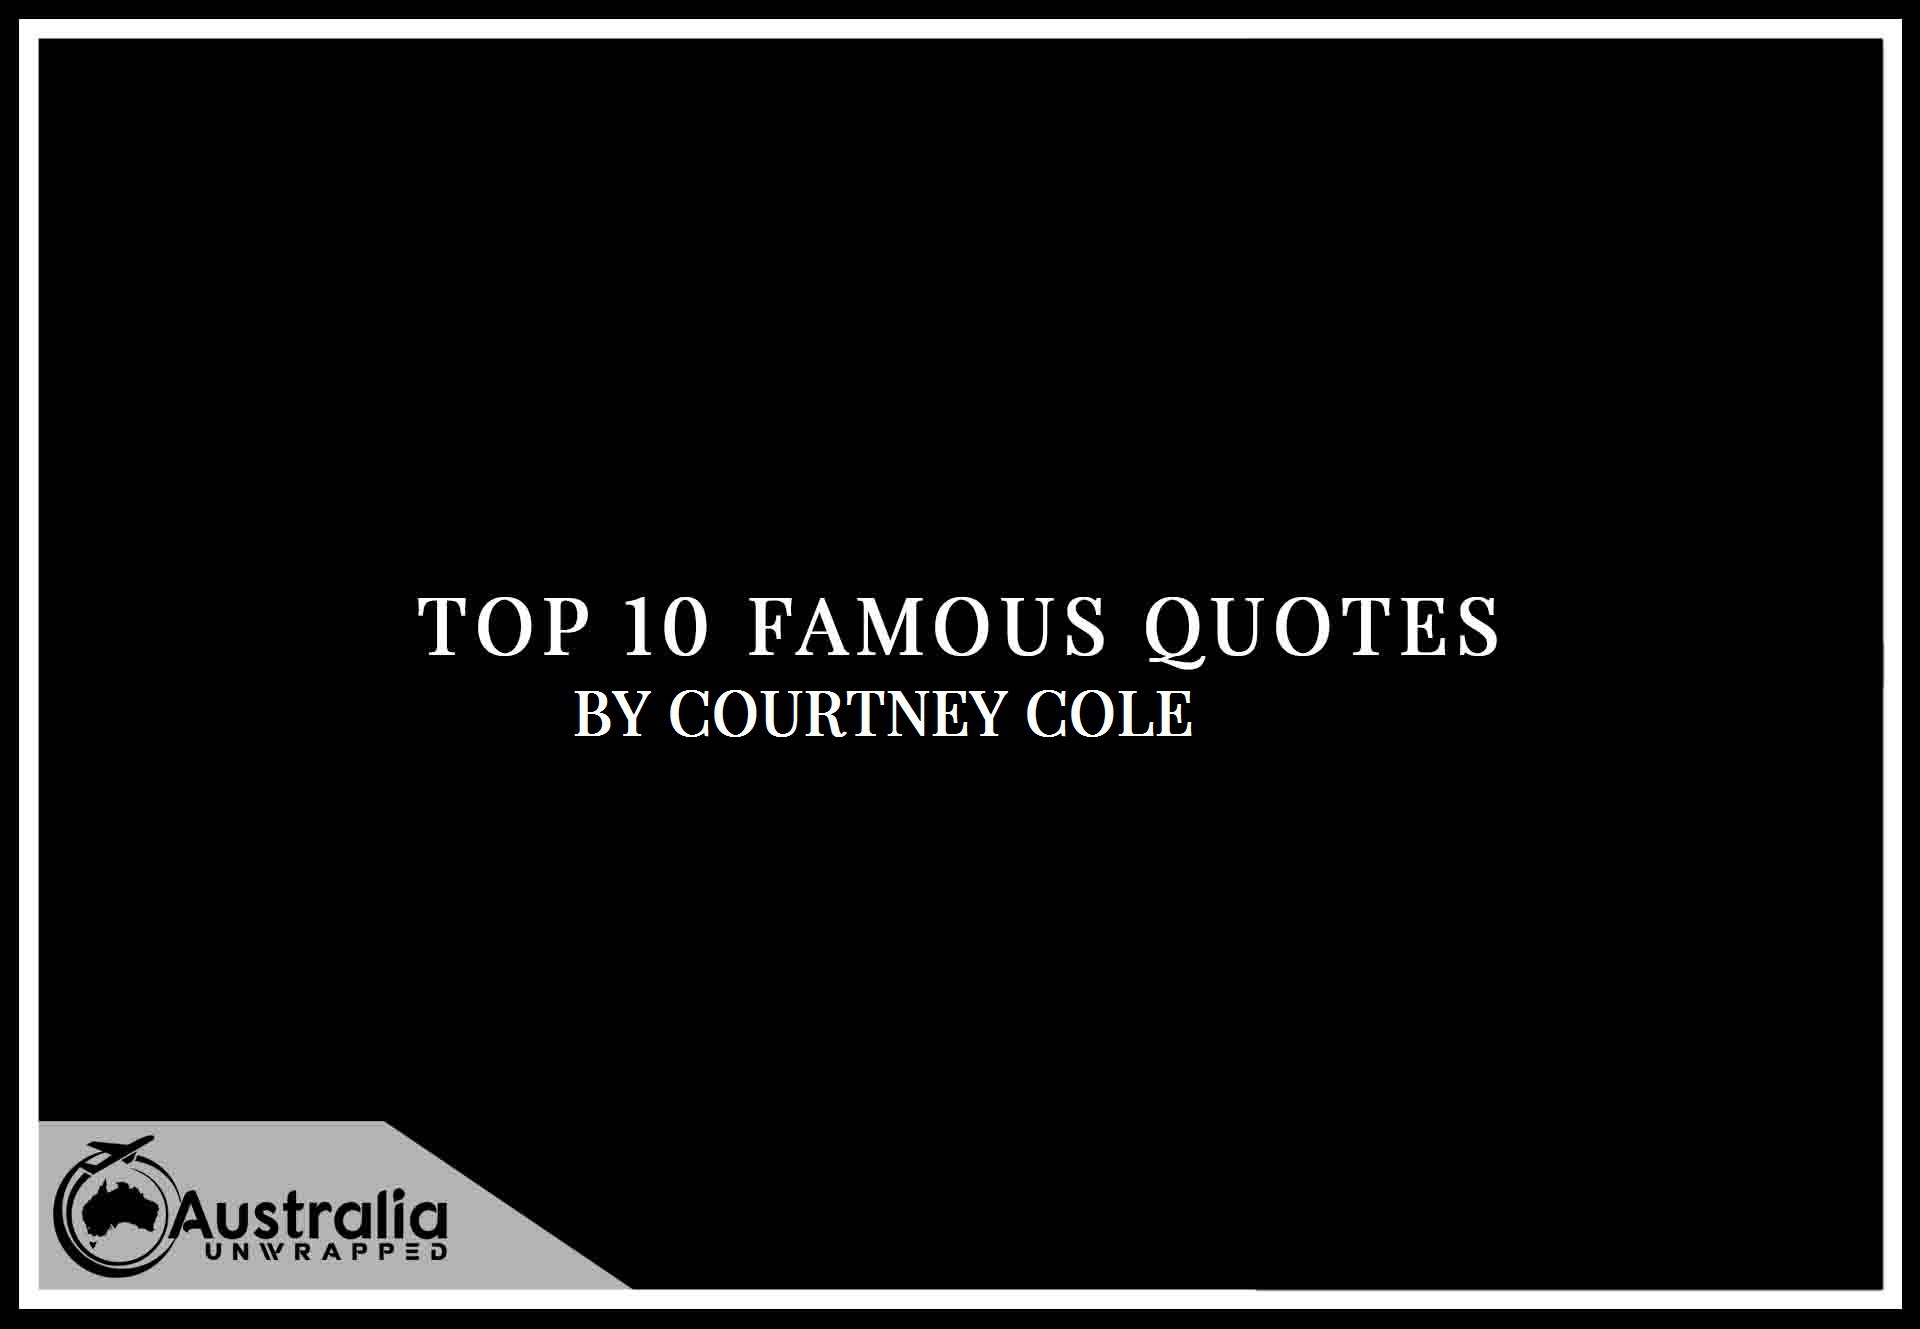 Courtney Cole's Top 10 Popular and Famous Quotes